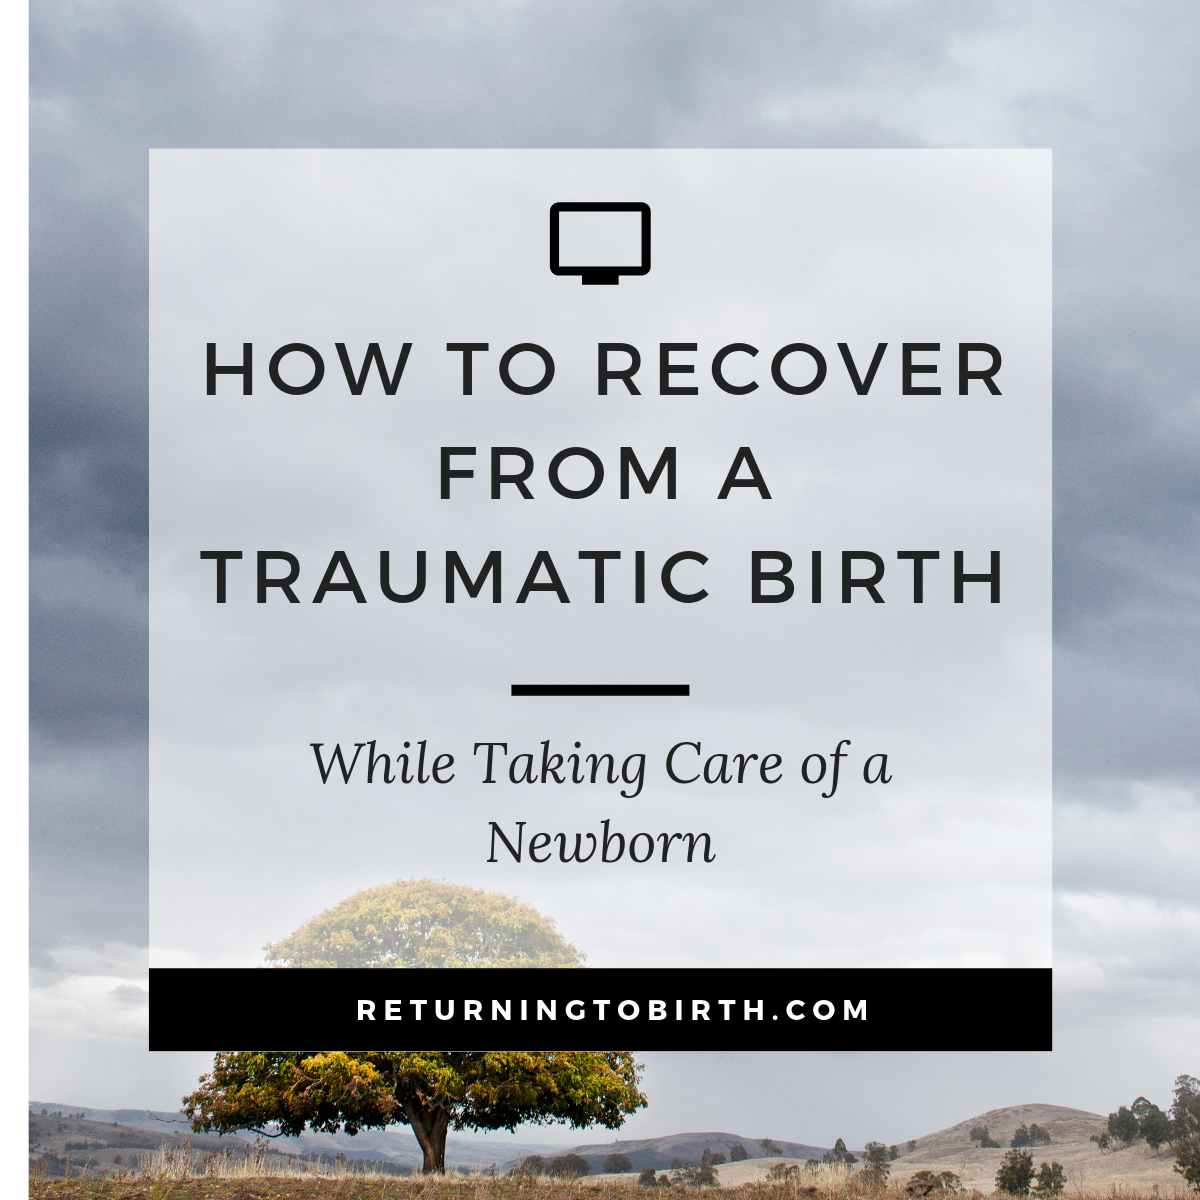 Around 30% of new moms report their birth experience as traumatic. It could be physically traumatic from an emergency situation or unwanted C-Section or emotional traumatic. Recovering from childbirth and taking care of a newborn is HARD even when everything goes perfectly so how are you supposed to do that after a traumatic birth? It's possible! Head over to the blog to read all about it. #traumarecovery #traumaticbirth #newborn